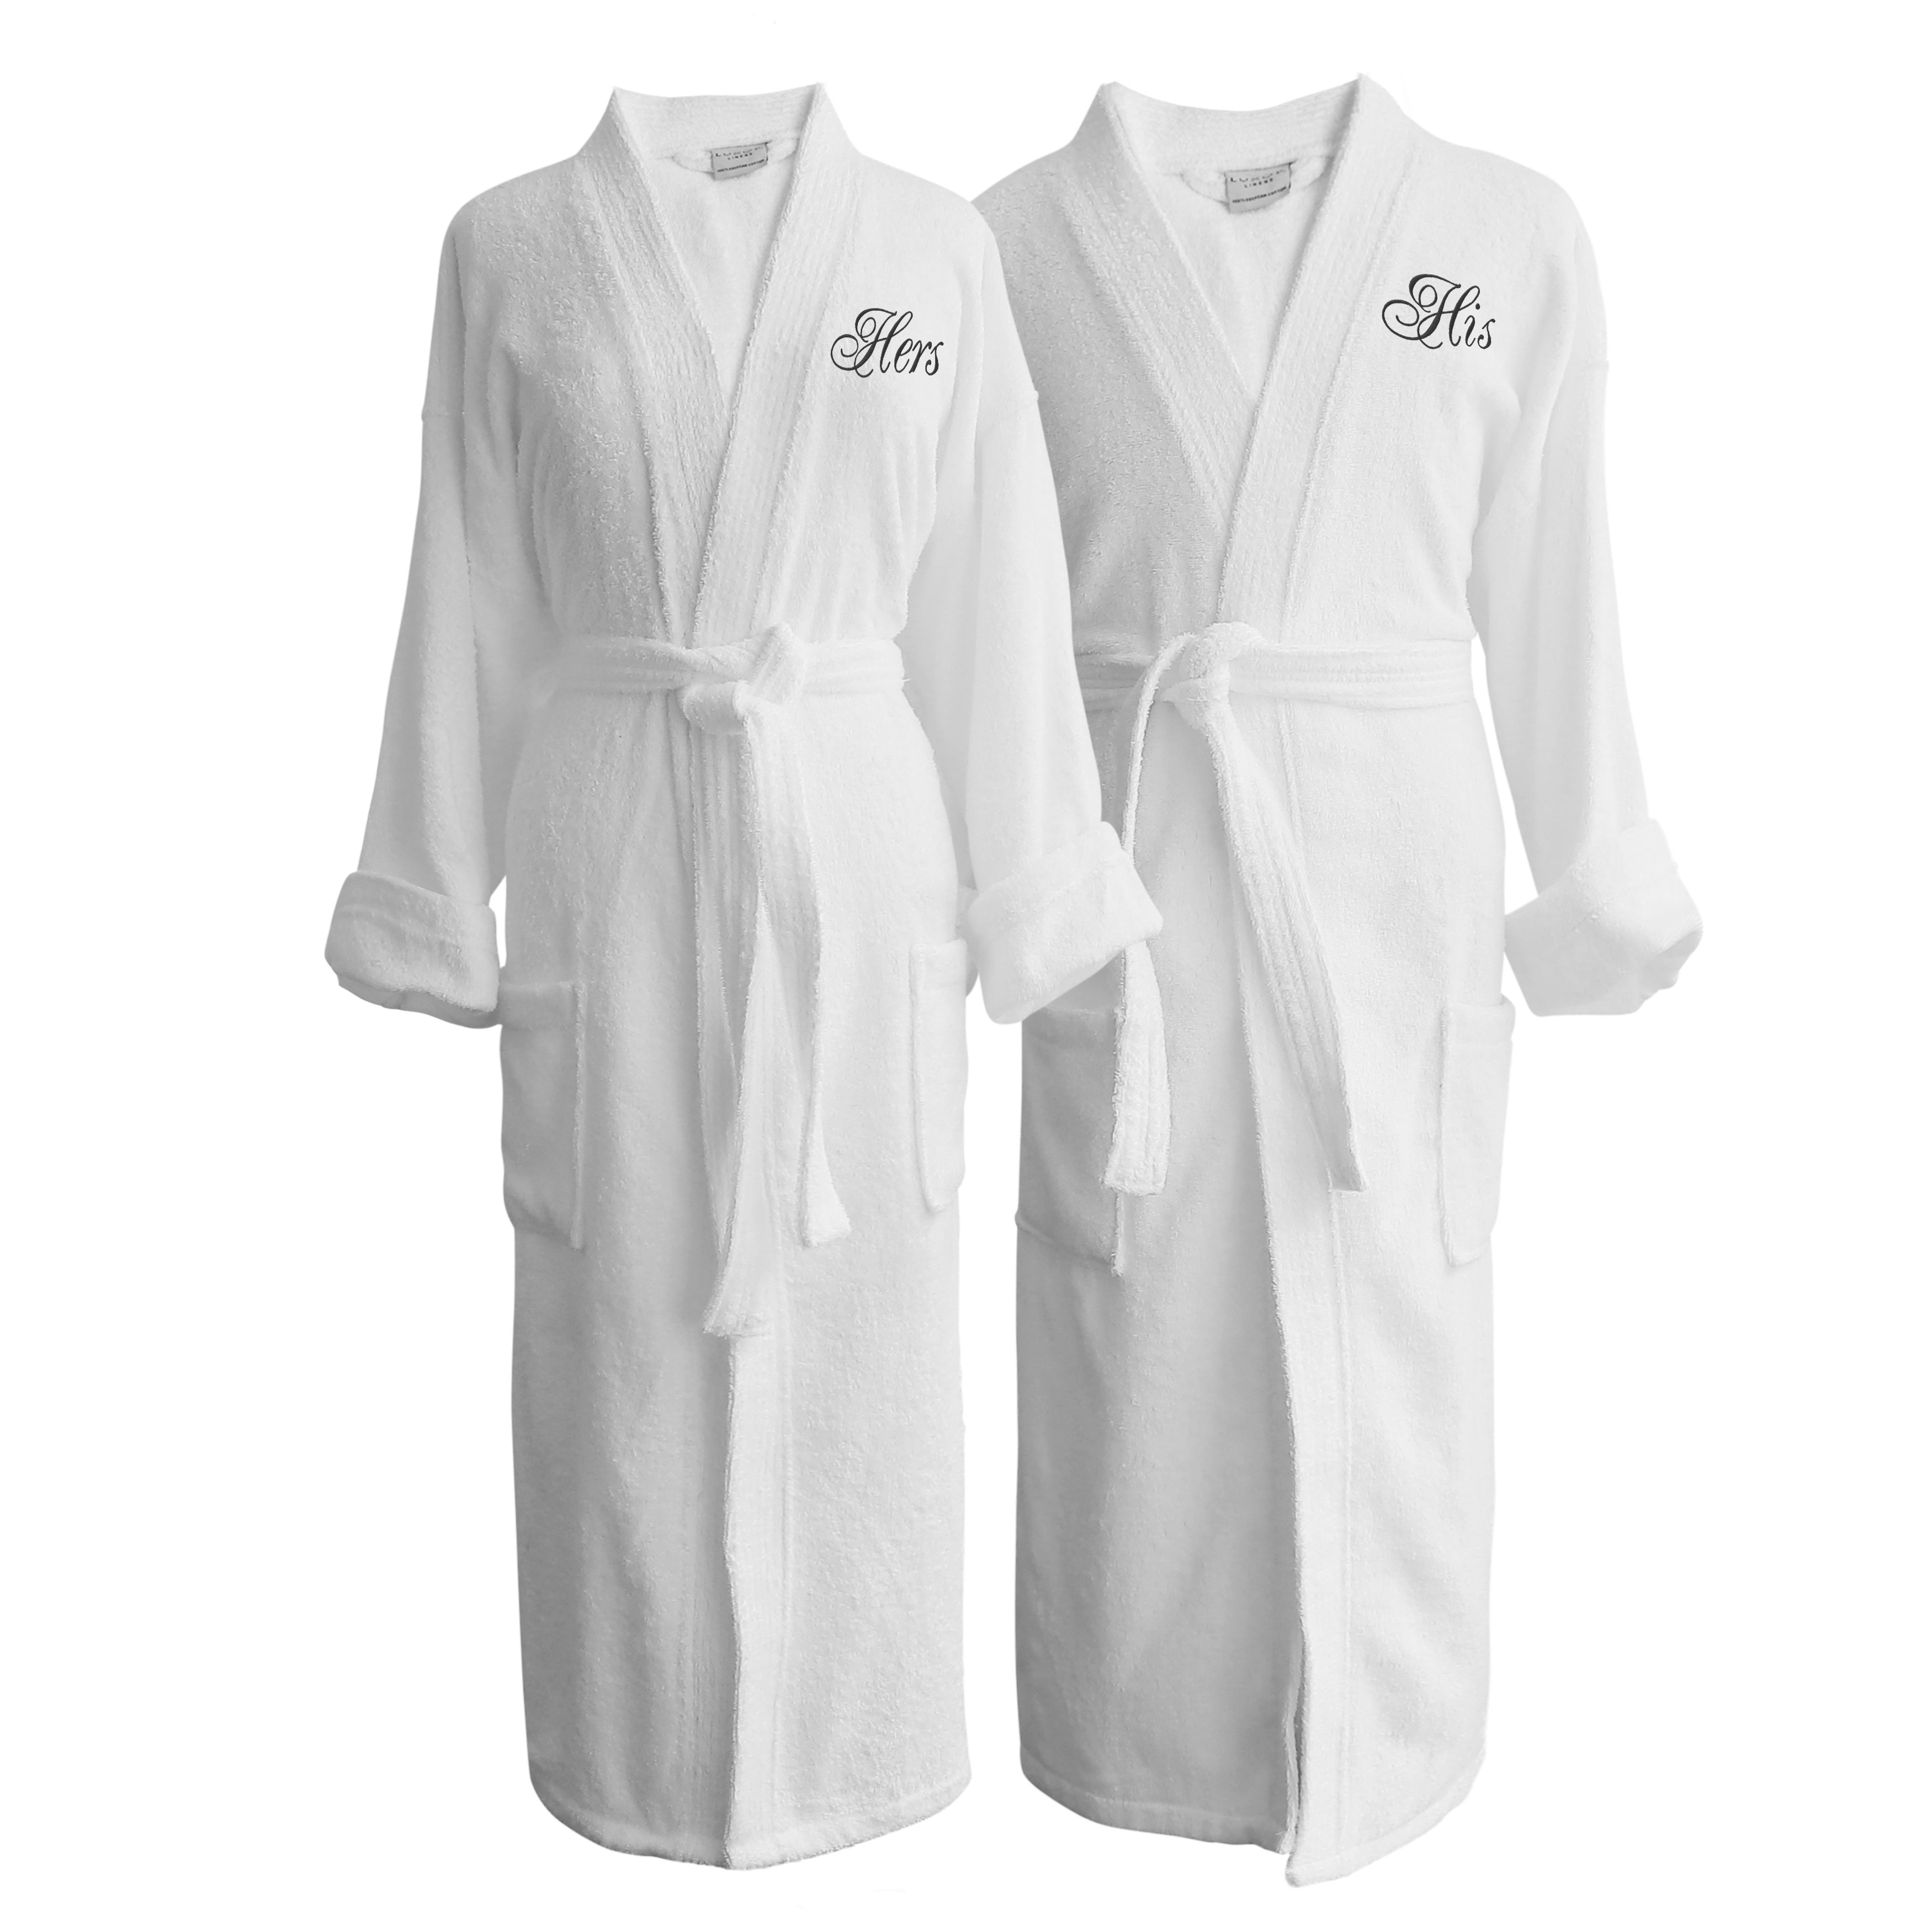 wyndham egyptian cotton his and hers terry spa robe set 2000797974759 ebay. Black Bedroom Furniture Sets. Home Design Ideas